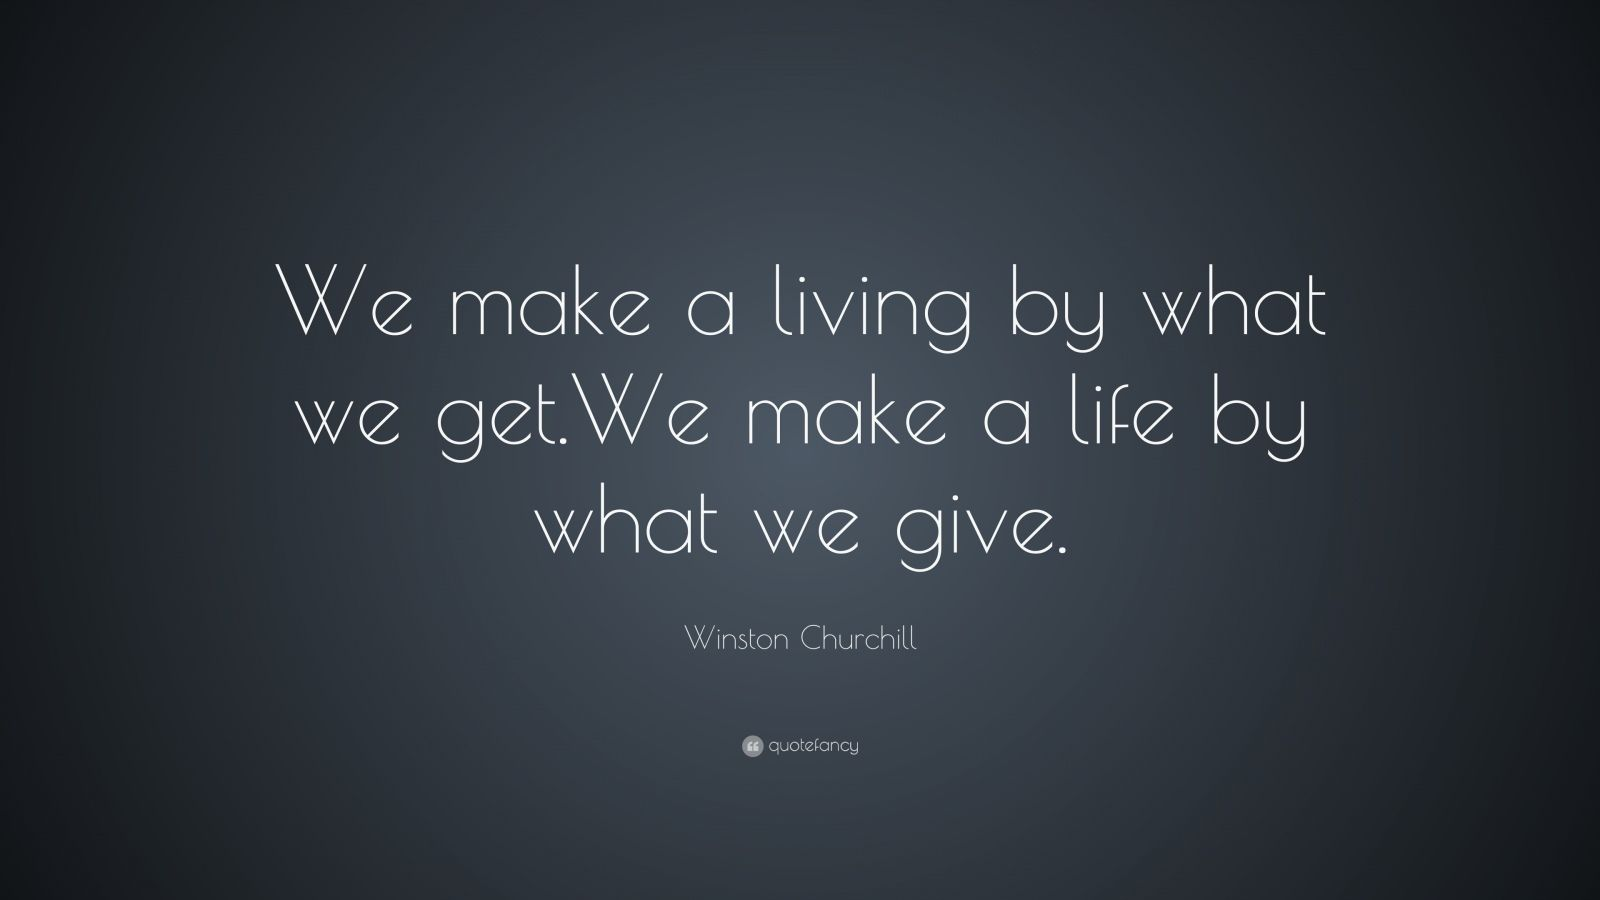 you make a living by what you get you make a life by what you give winston churchill circa 1940